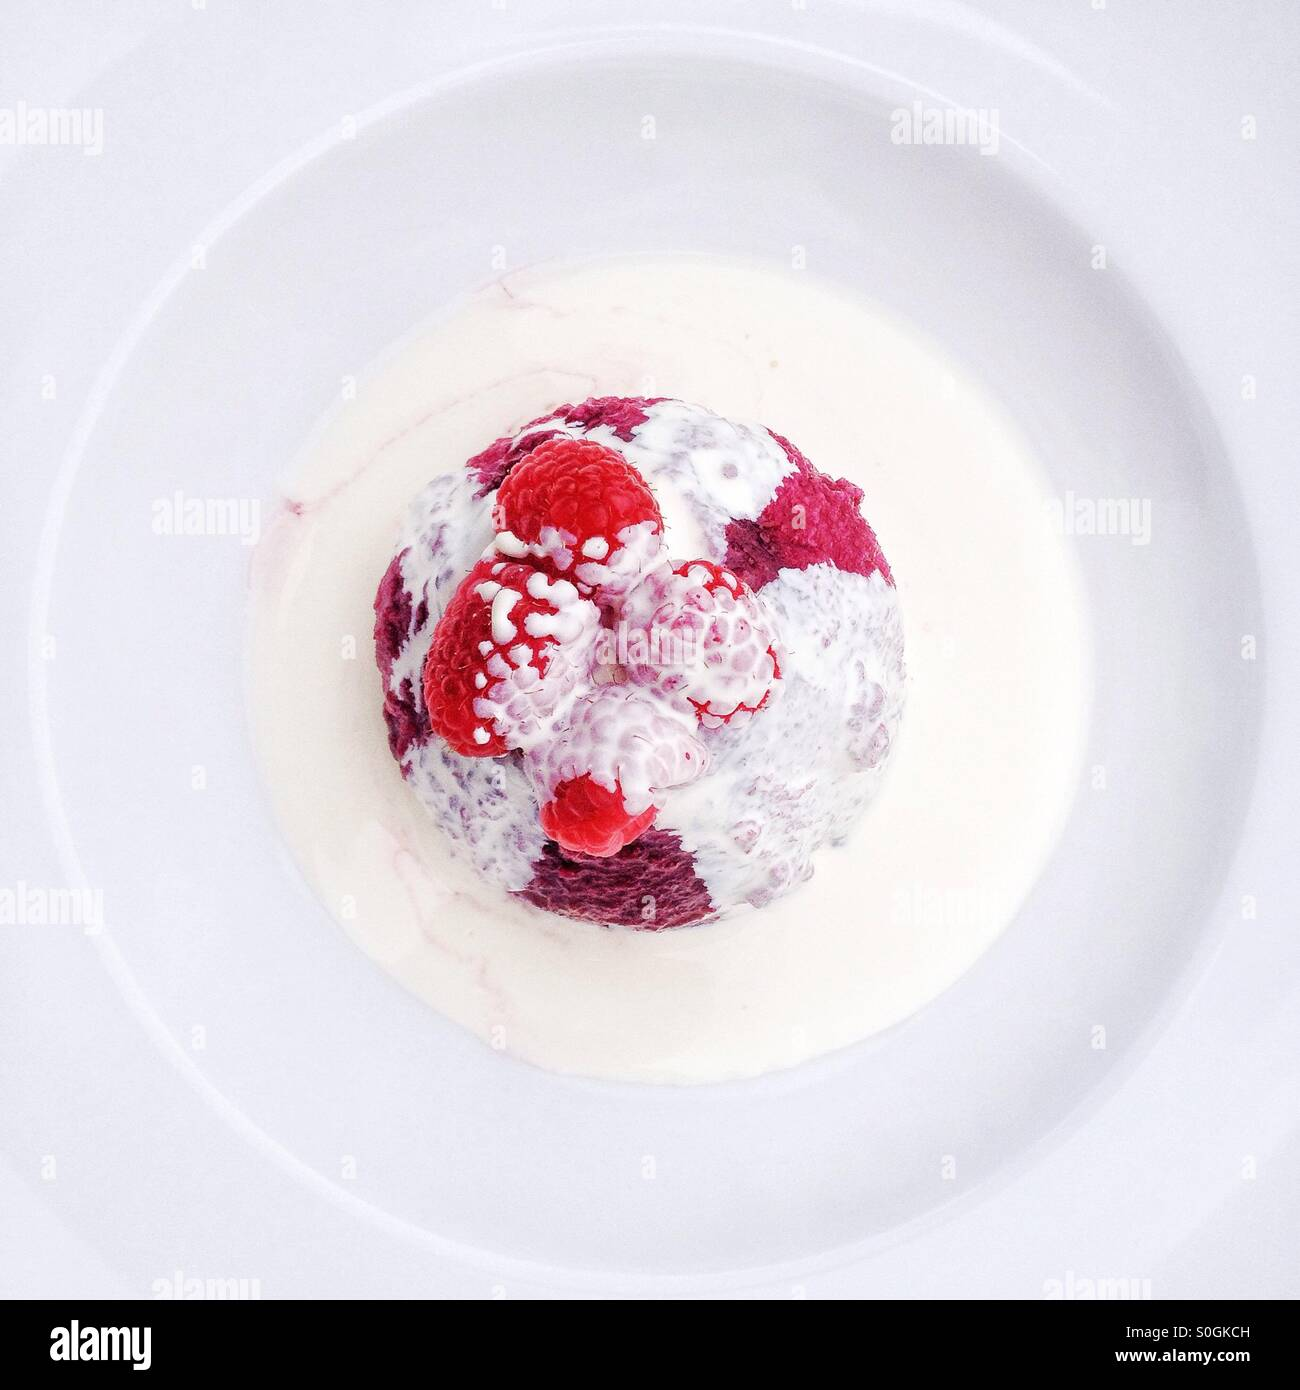 Summer pudding with cream. - Stock Image